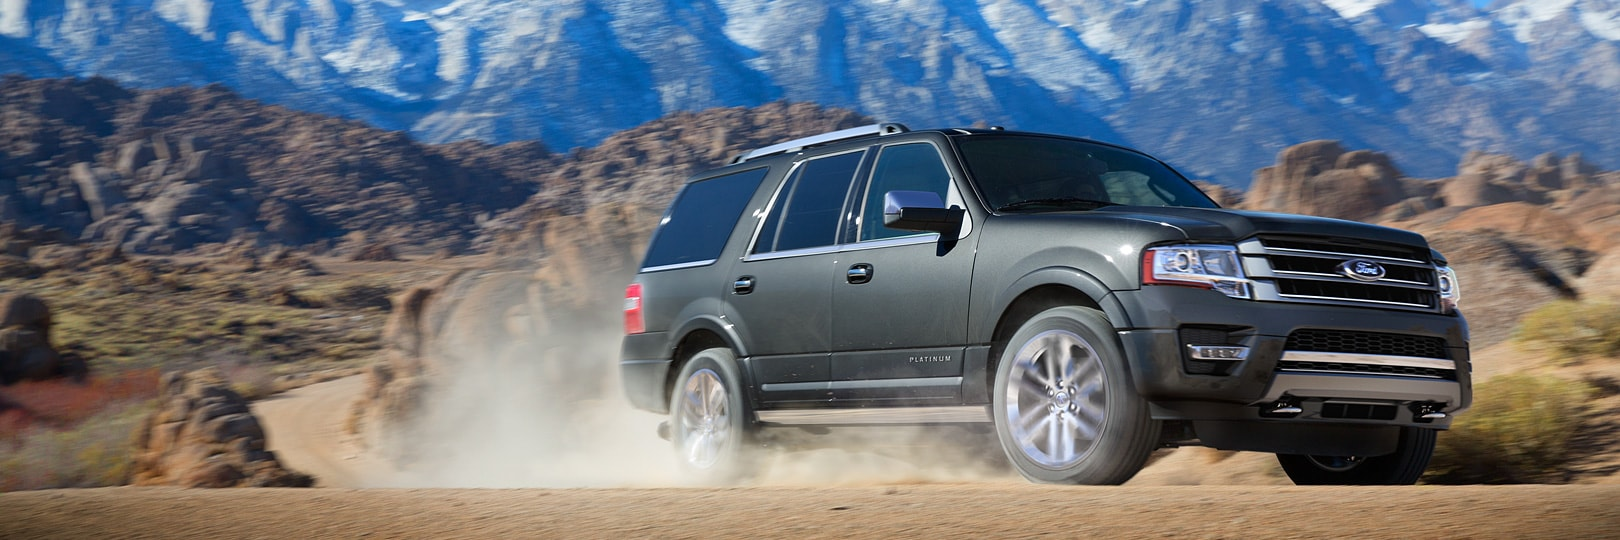 Looking For An Suv That Goes The Extra Mile Enjoy The  Ford Expedition El